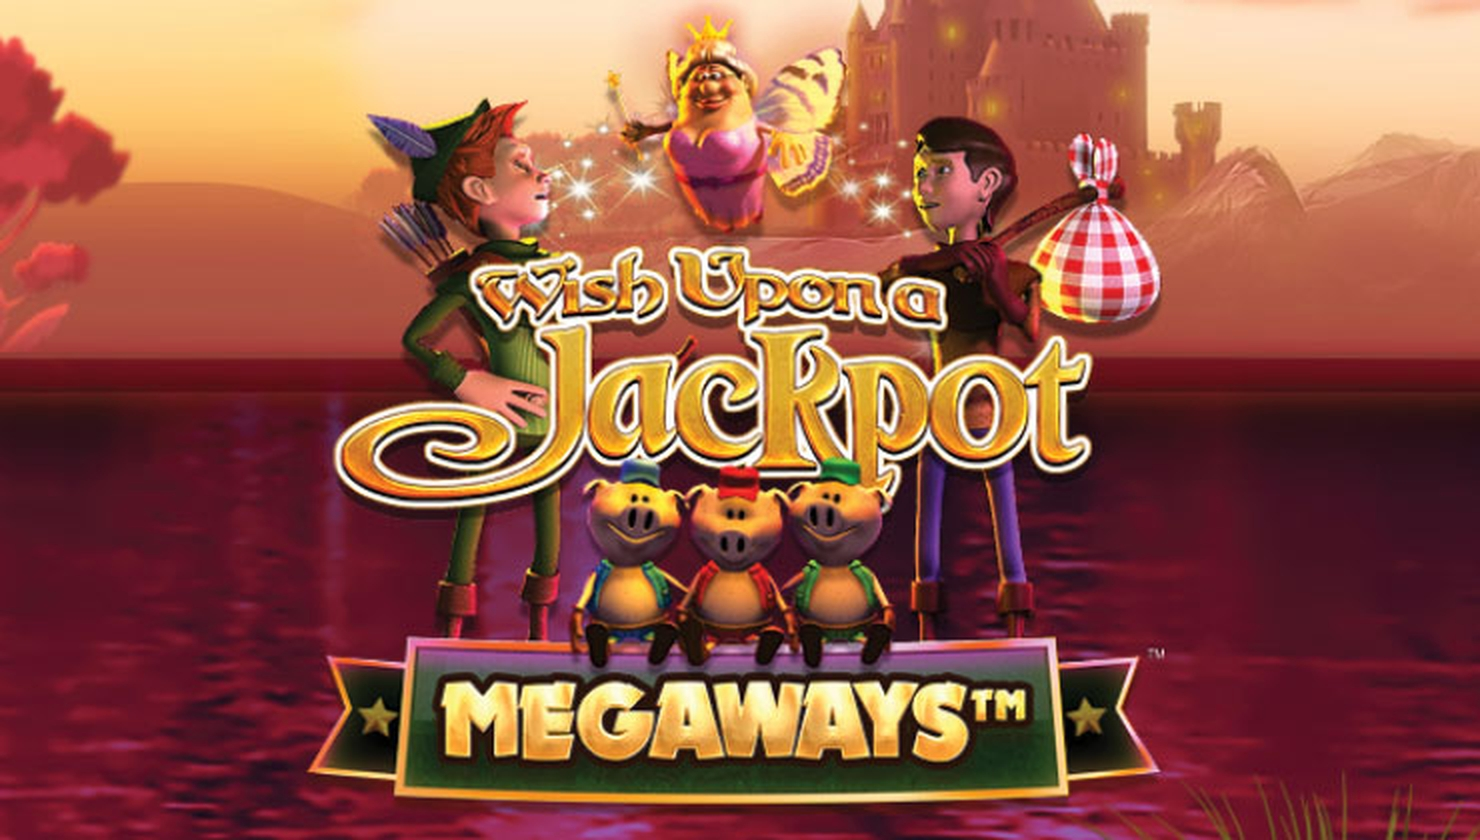 The Wish Upon A Jackpot Megaways Online Slot Demo Game by Blueprint Gaming